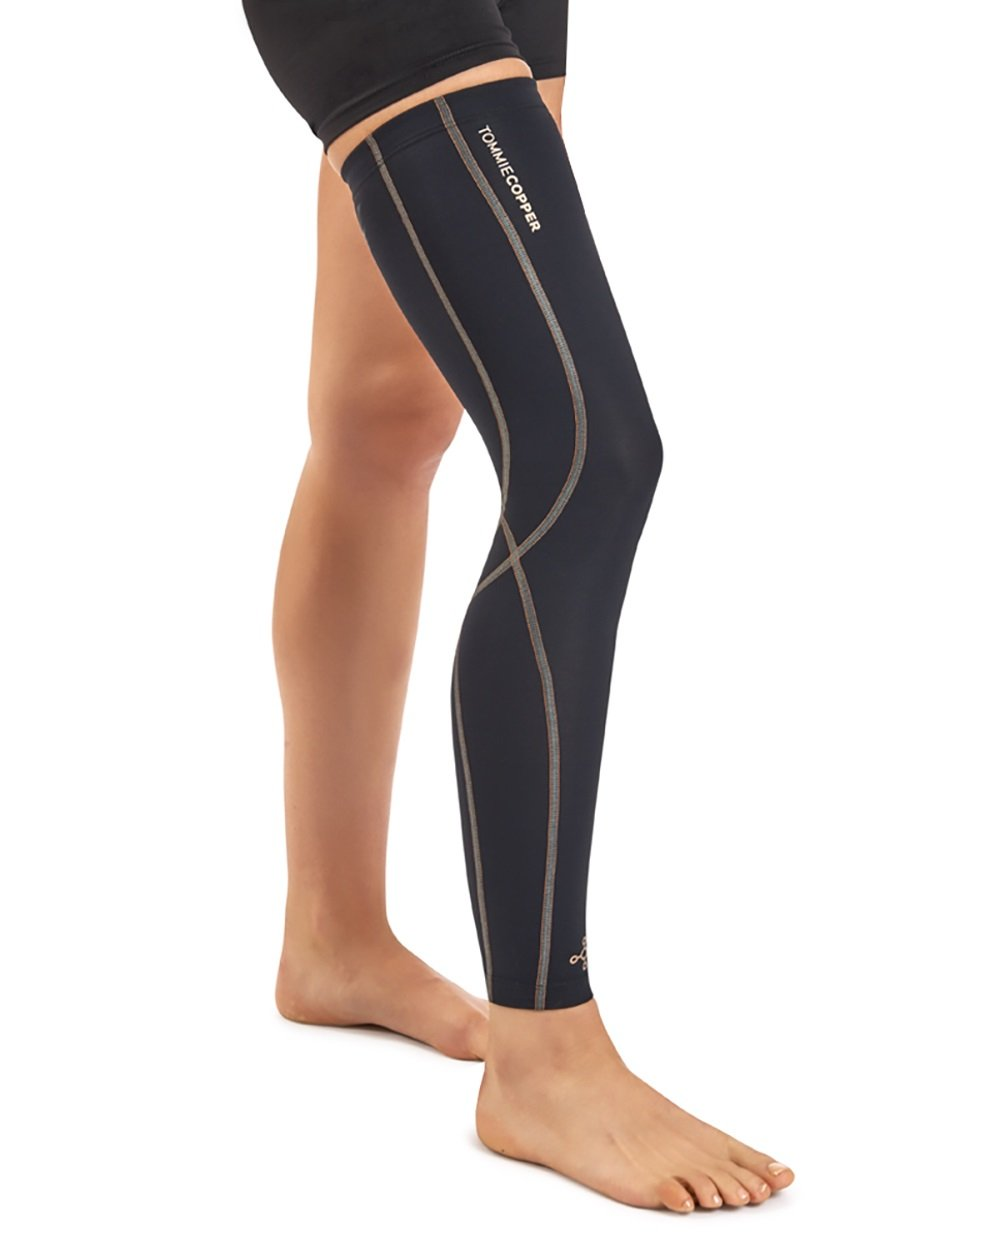 Stores That Sell Tommie Copper - Amazon com tommie copper womens performance full leg sleeve 2 0 sports outdoors